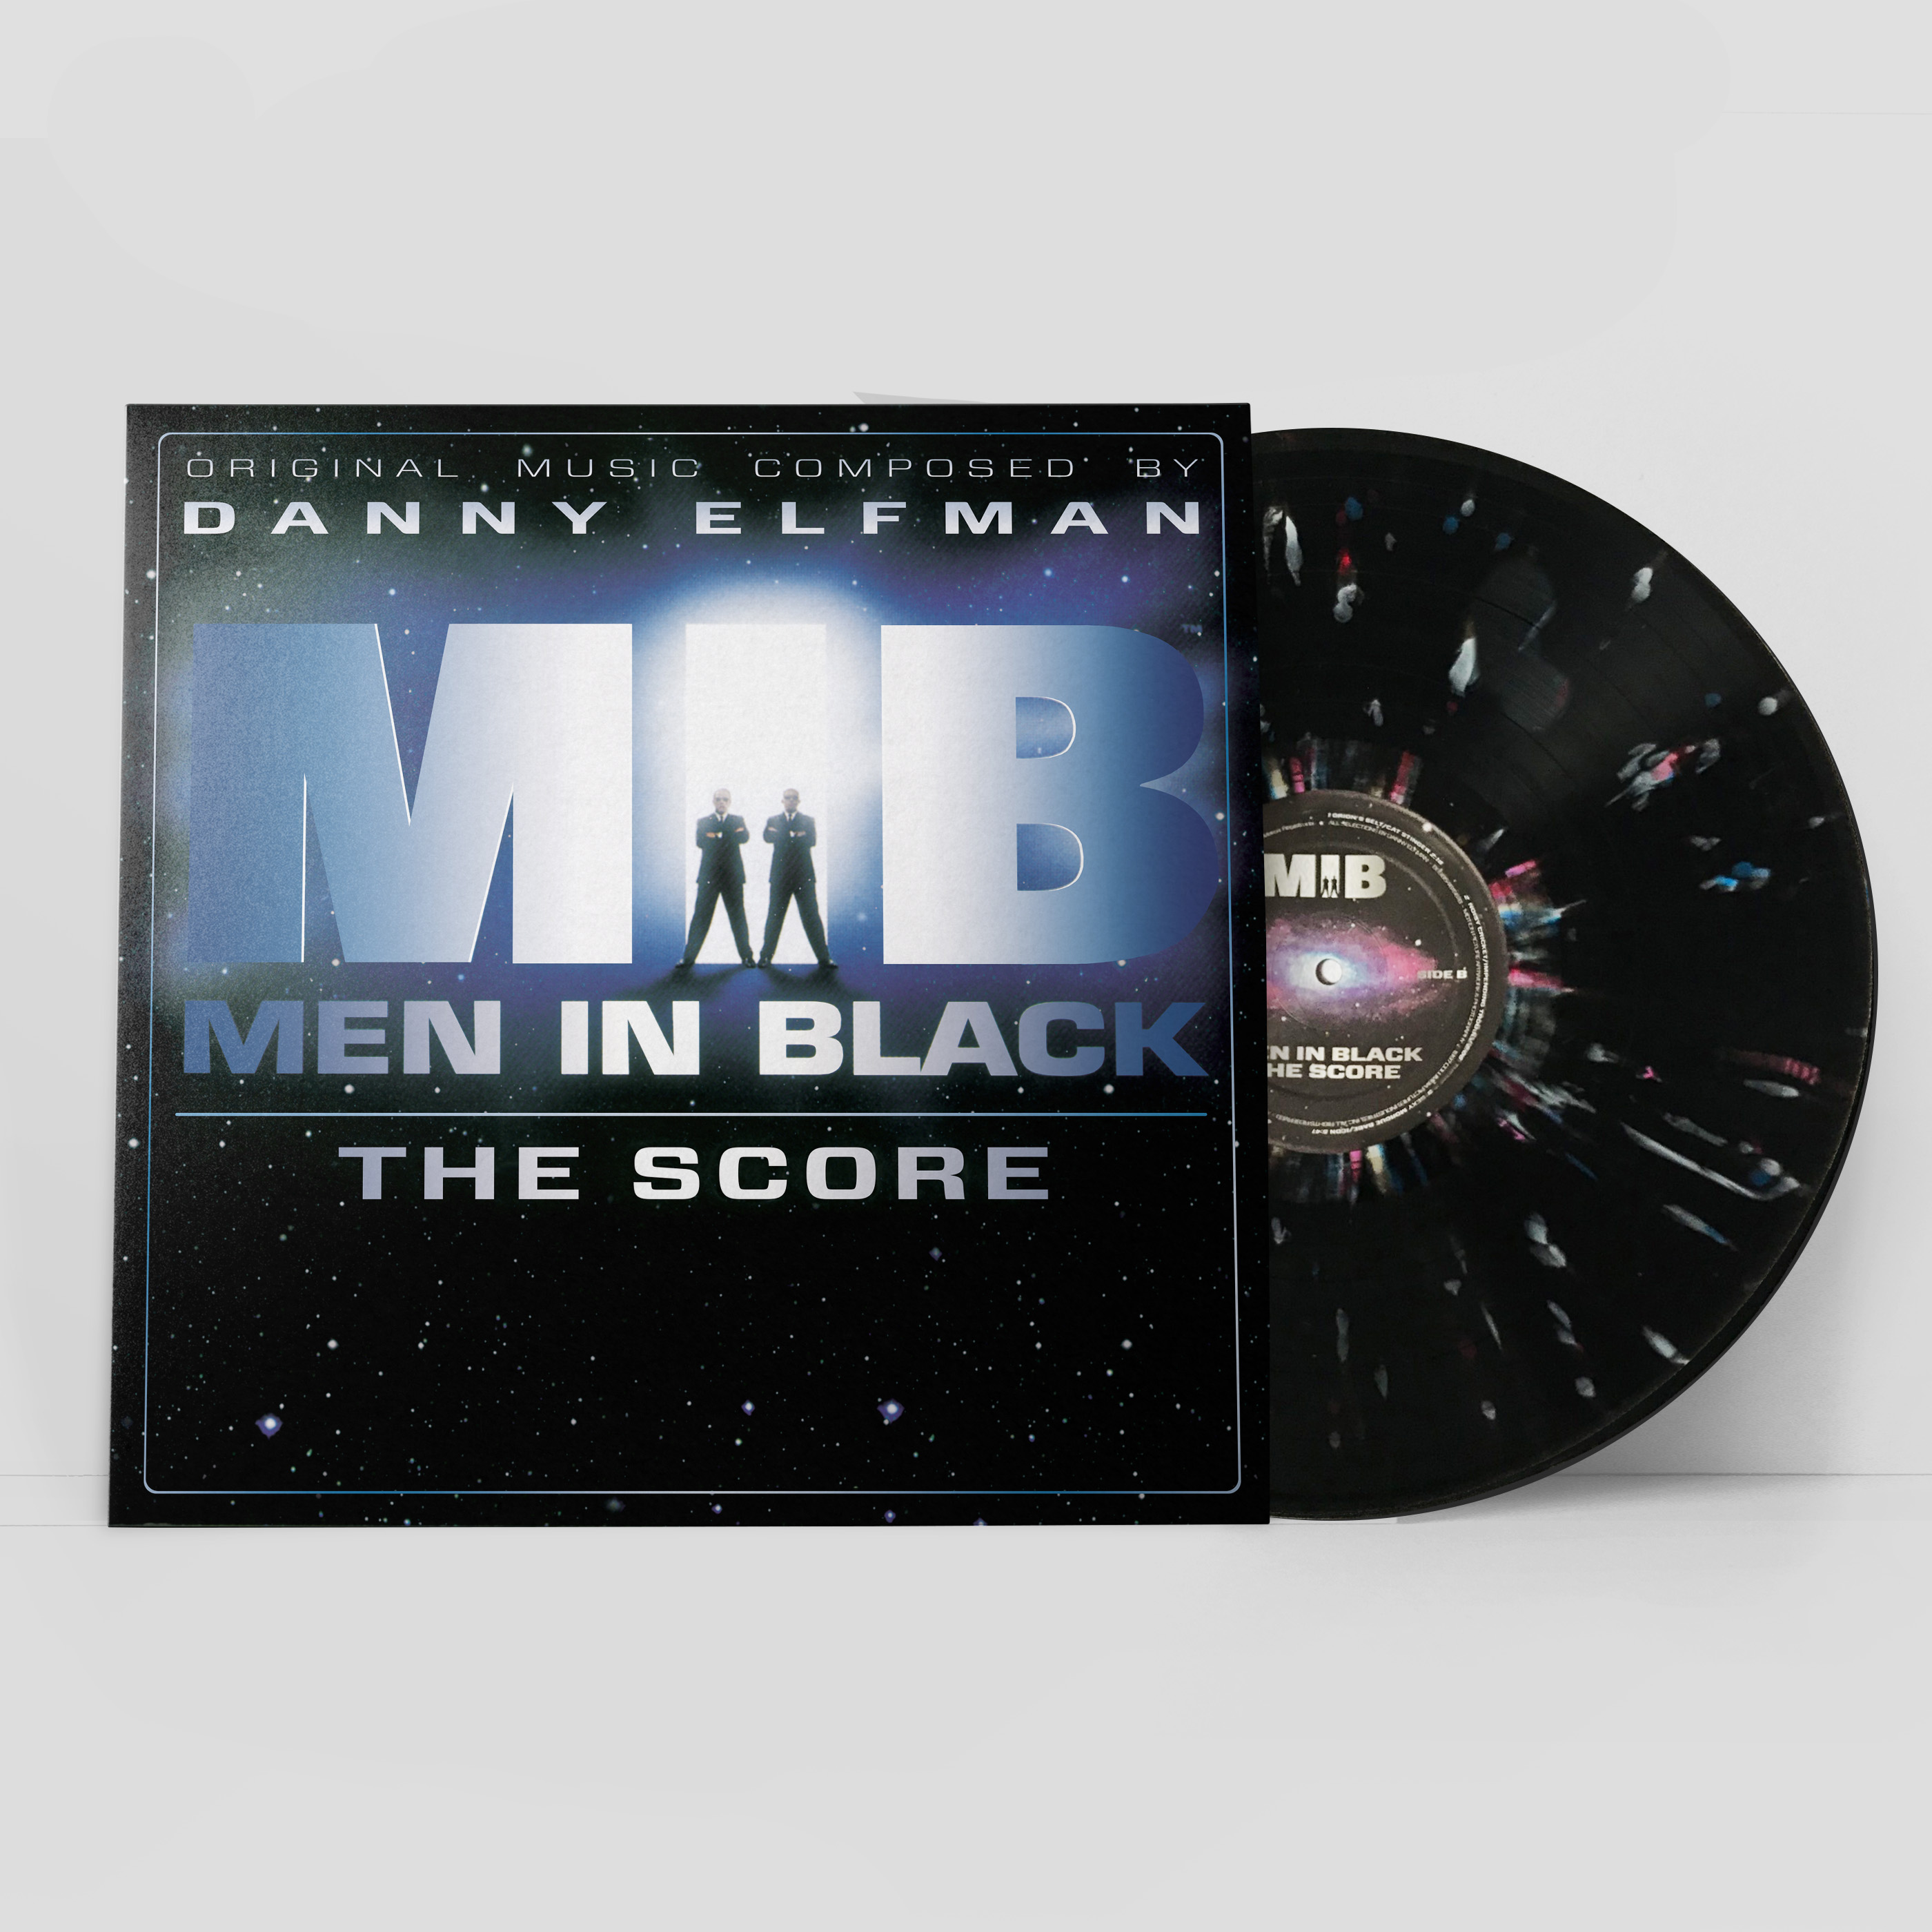 ett013 etr068 men in black mockup 3 Danny Elfmans Men in Black score coming to vinyl for first time